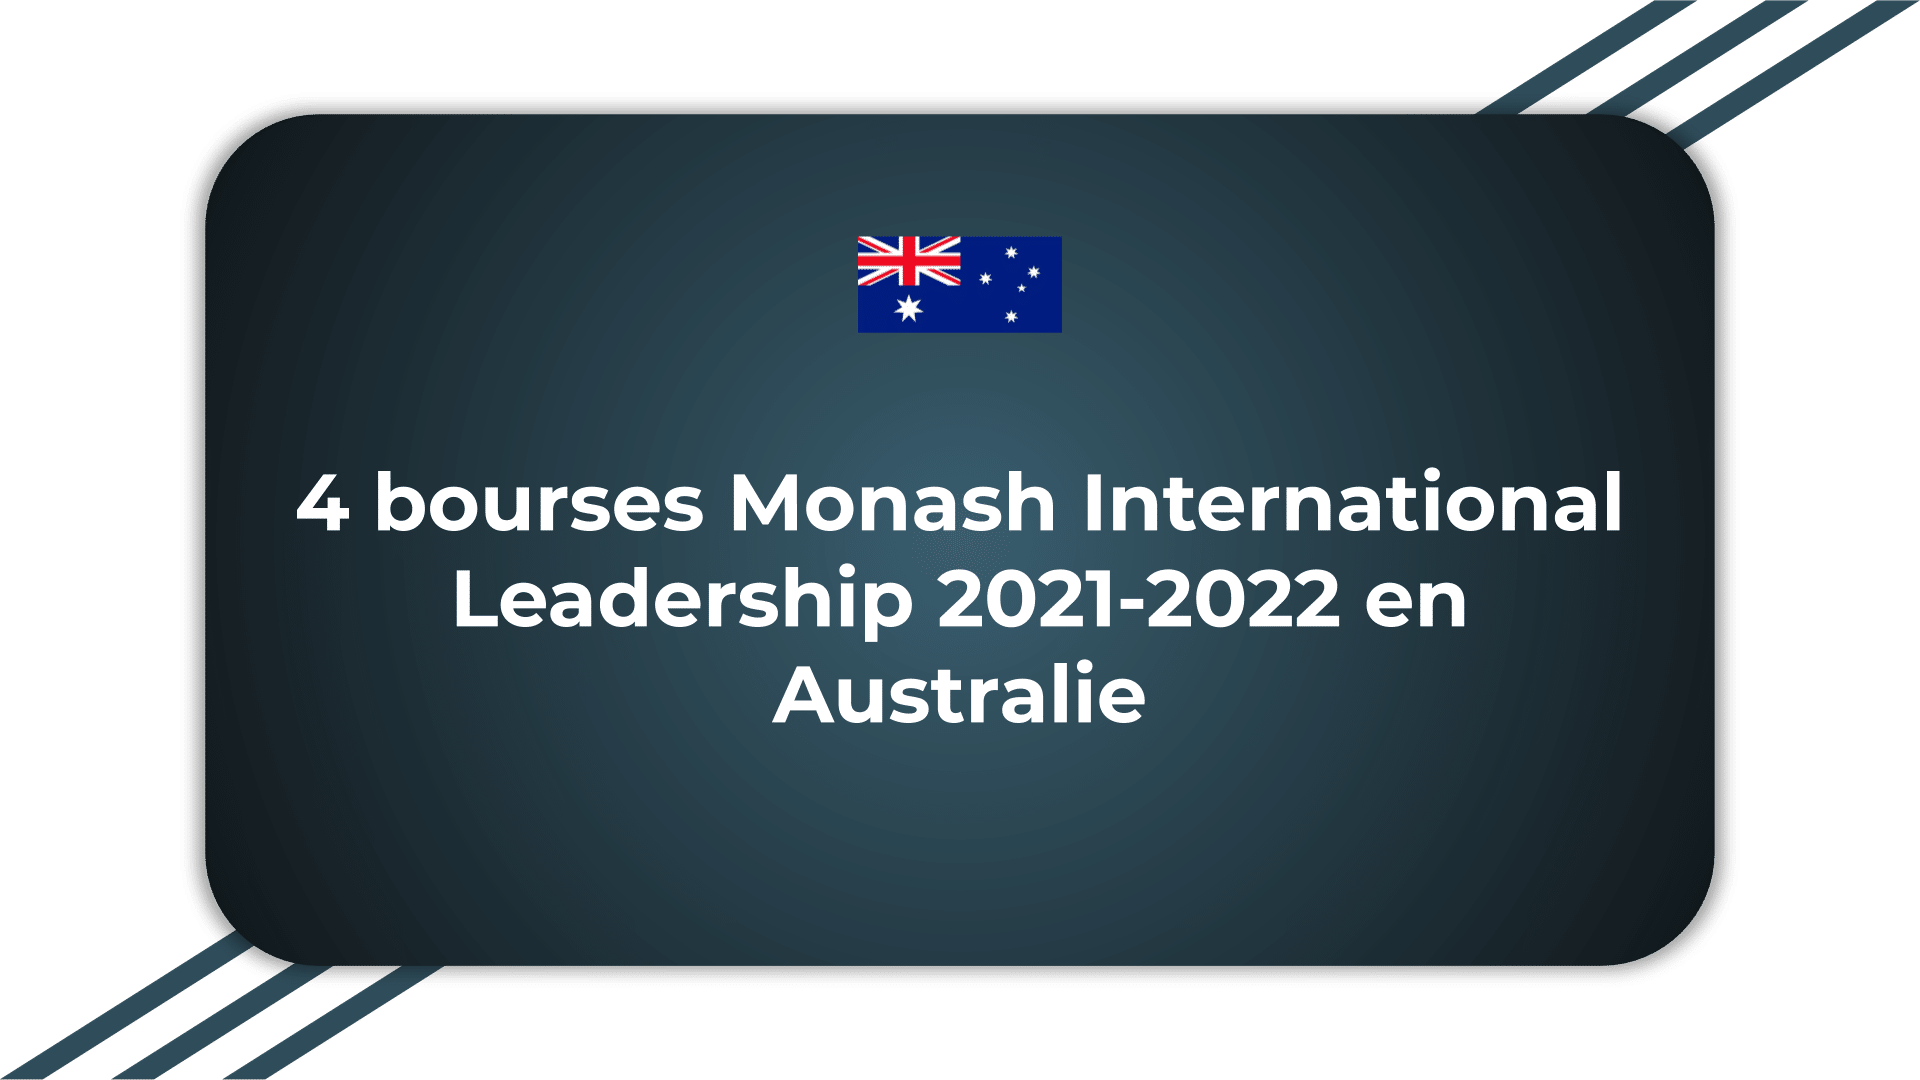 4 bourses Monash International Leadership